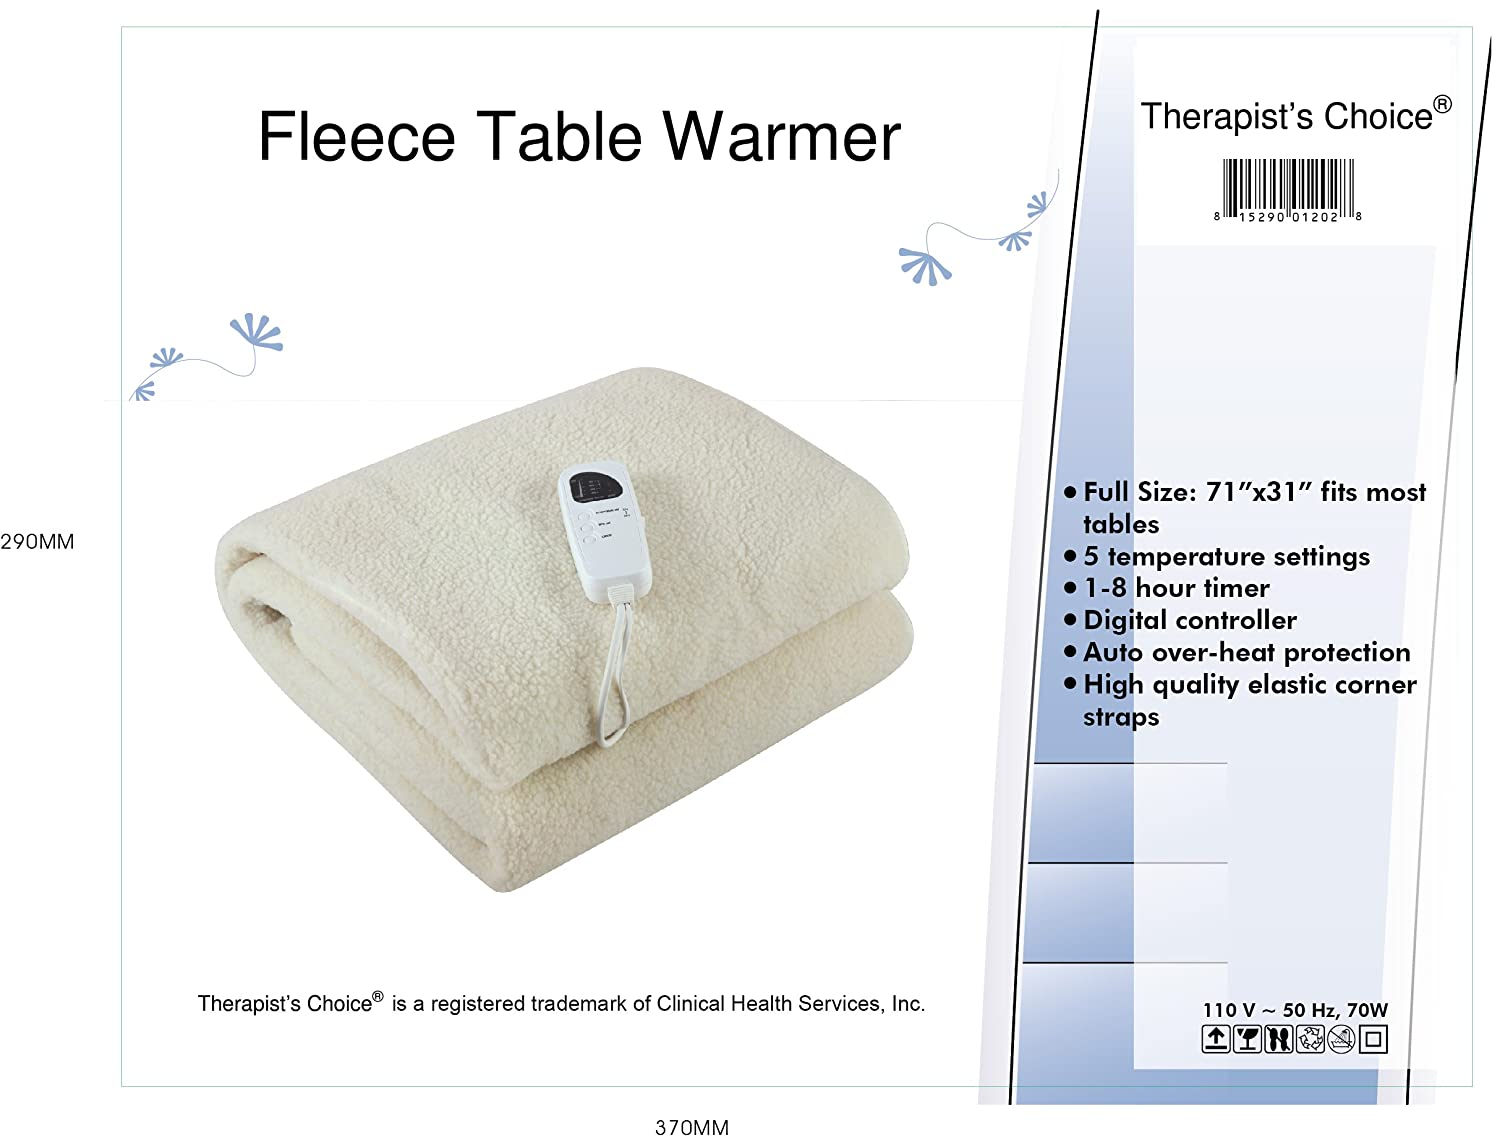 Therapists ChoiceR Deluxe Fleece Massage Table Warmer